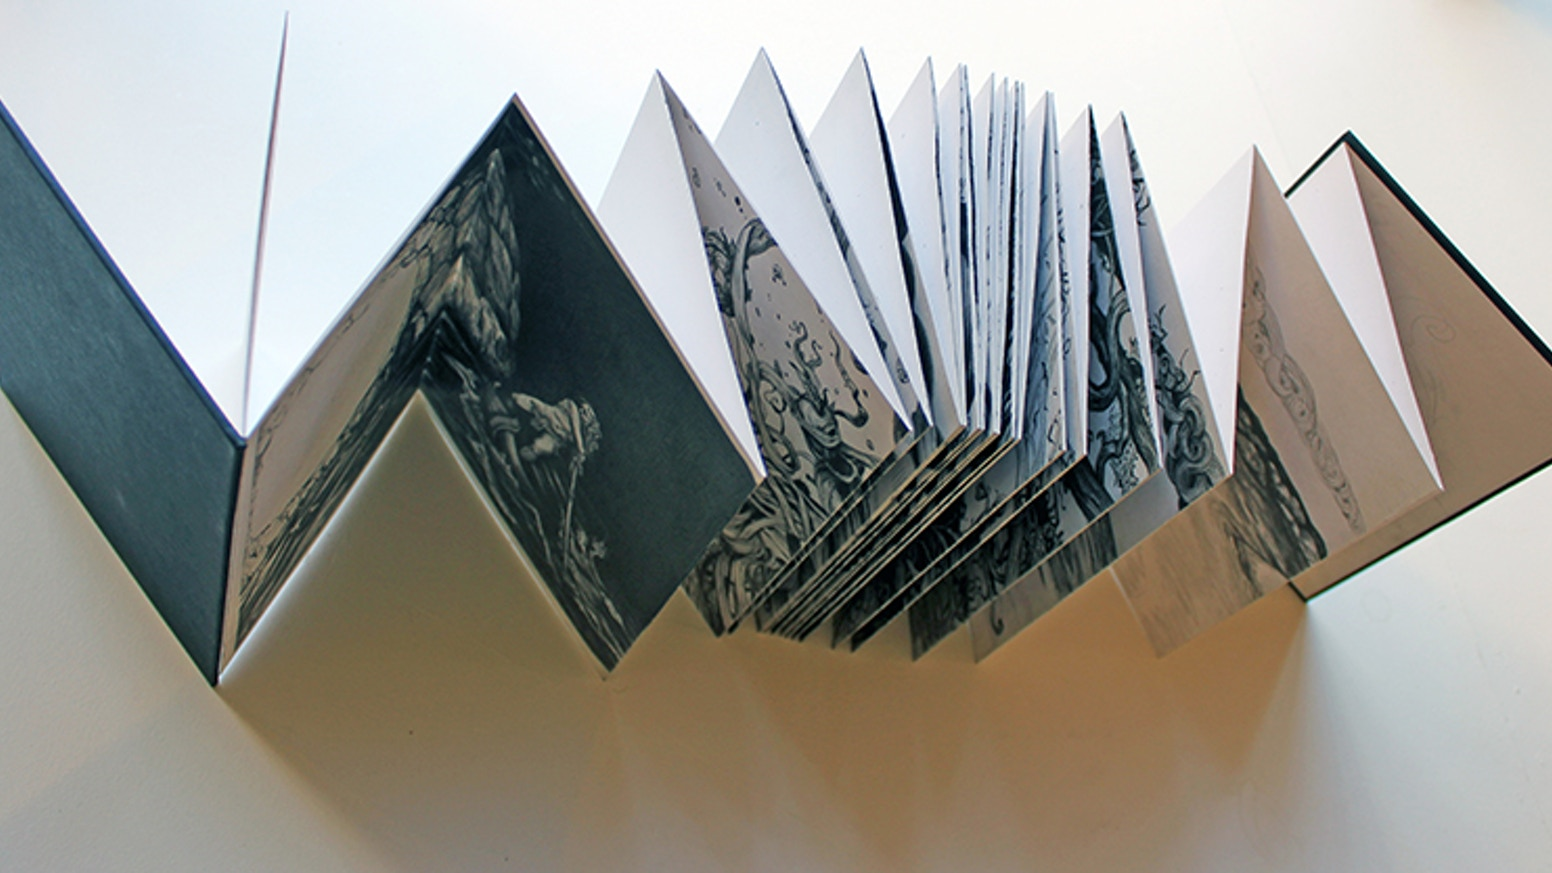 The publishing of Tim Lane's five metre long concertina book drawing as a limited edition artist bookwork.